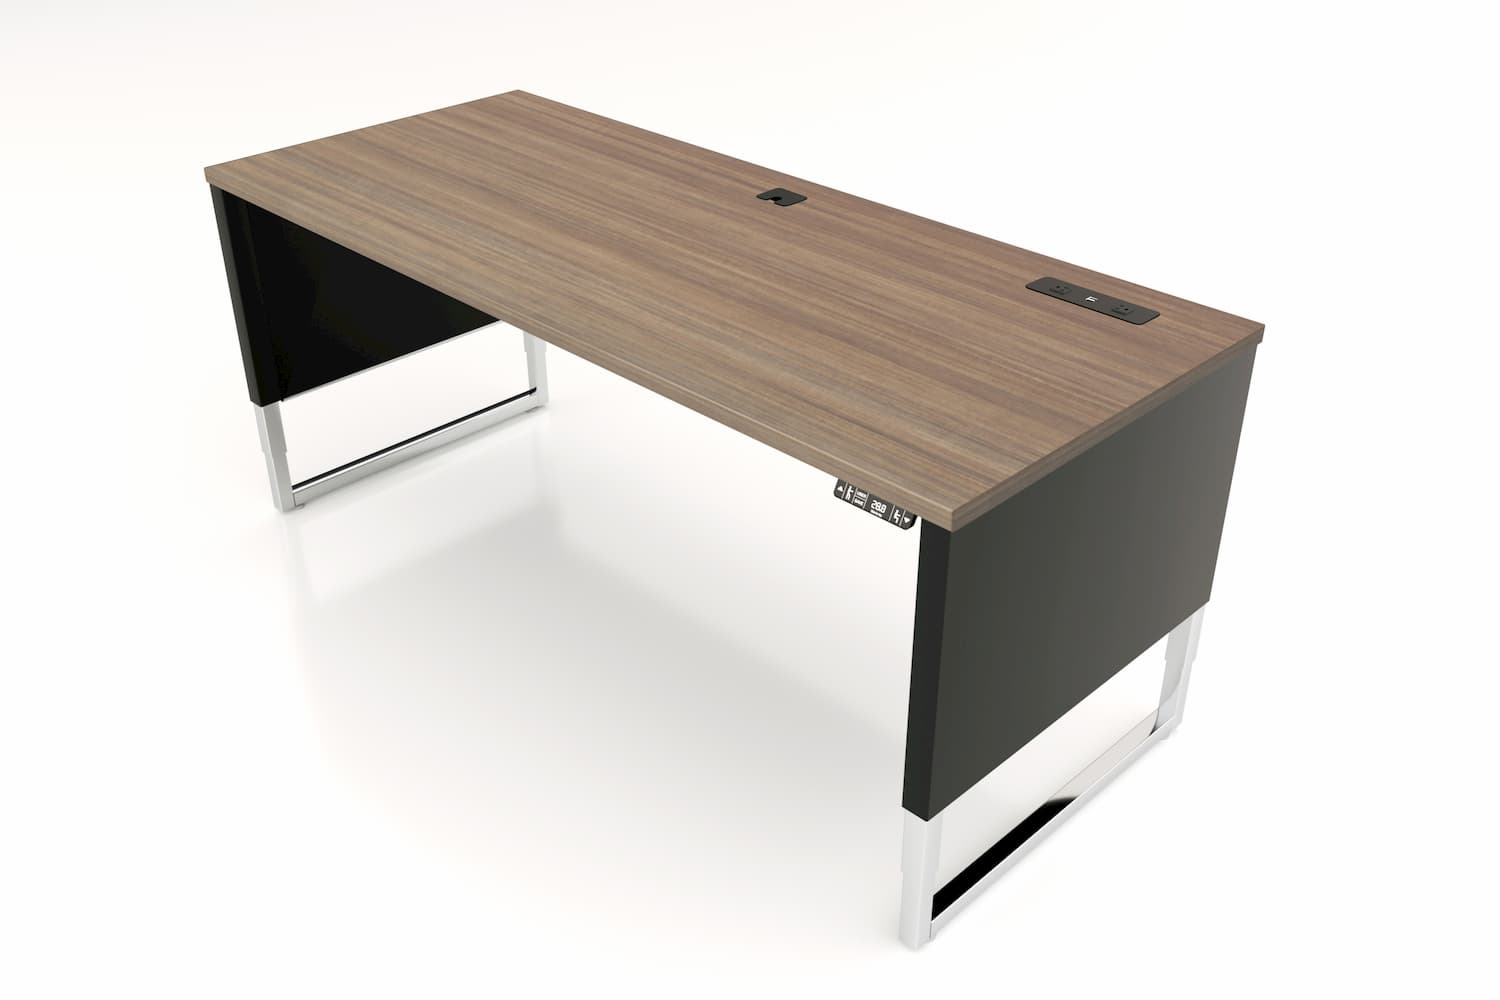 Advent-Desk-ADV-7230-BK-Custom-Top-3